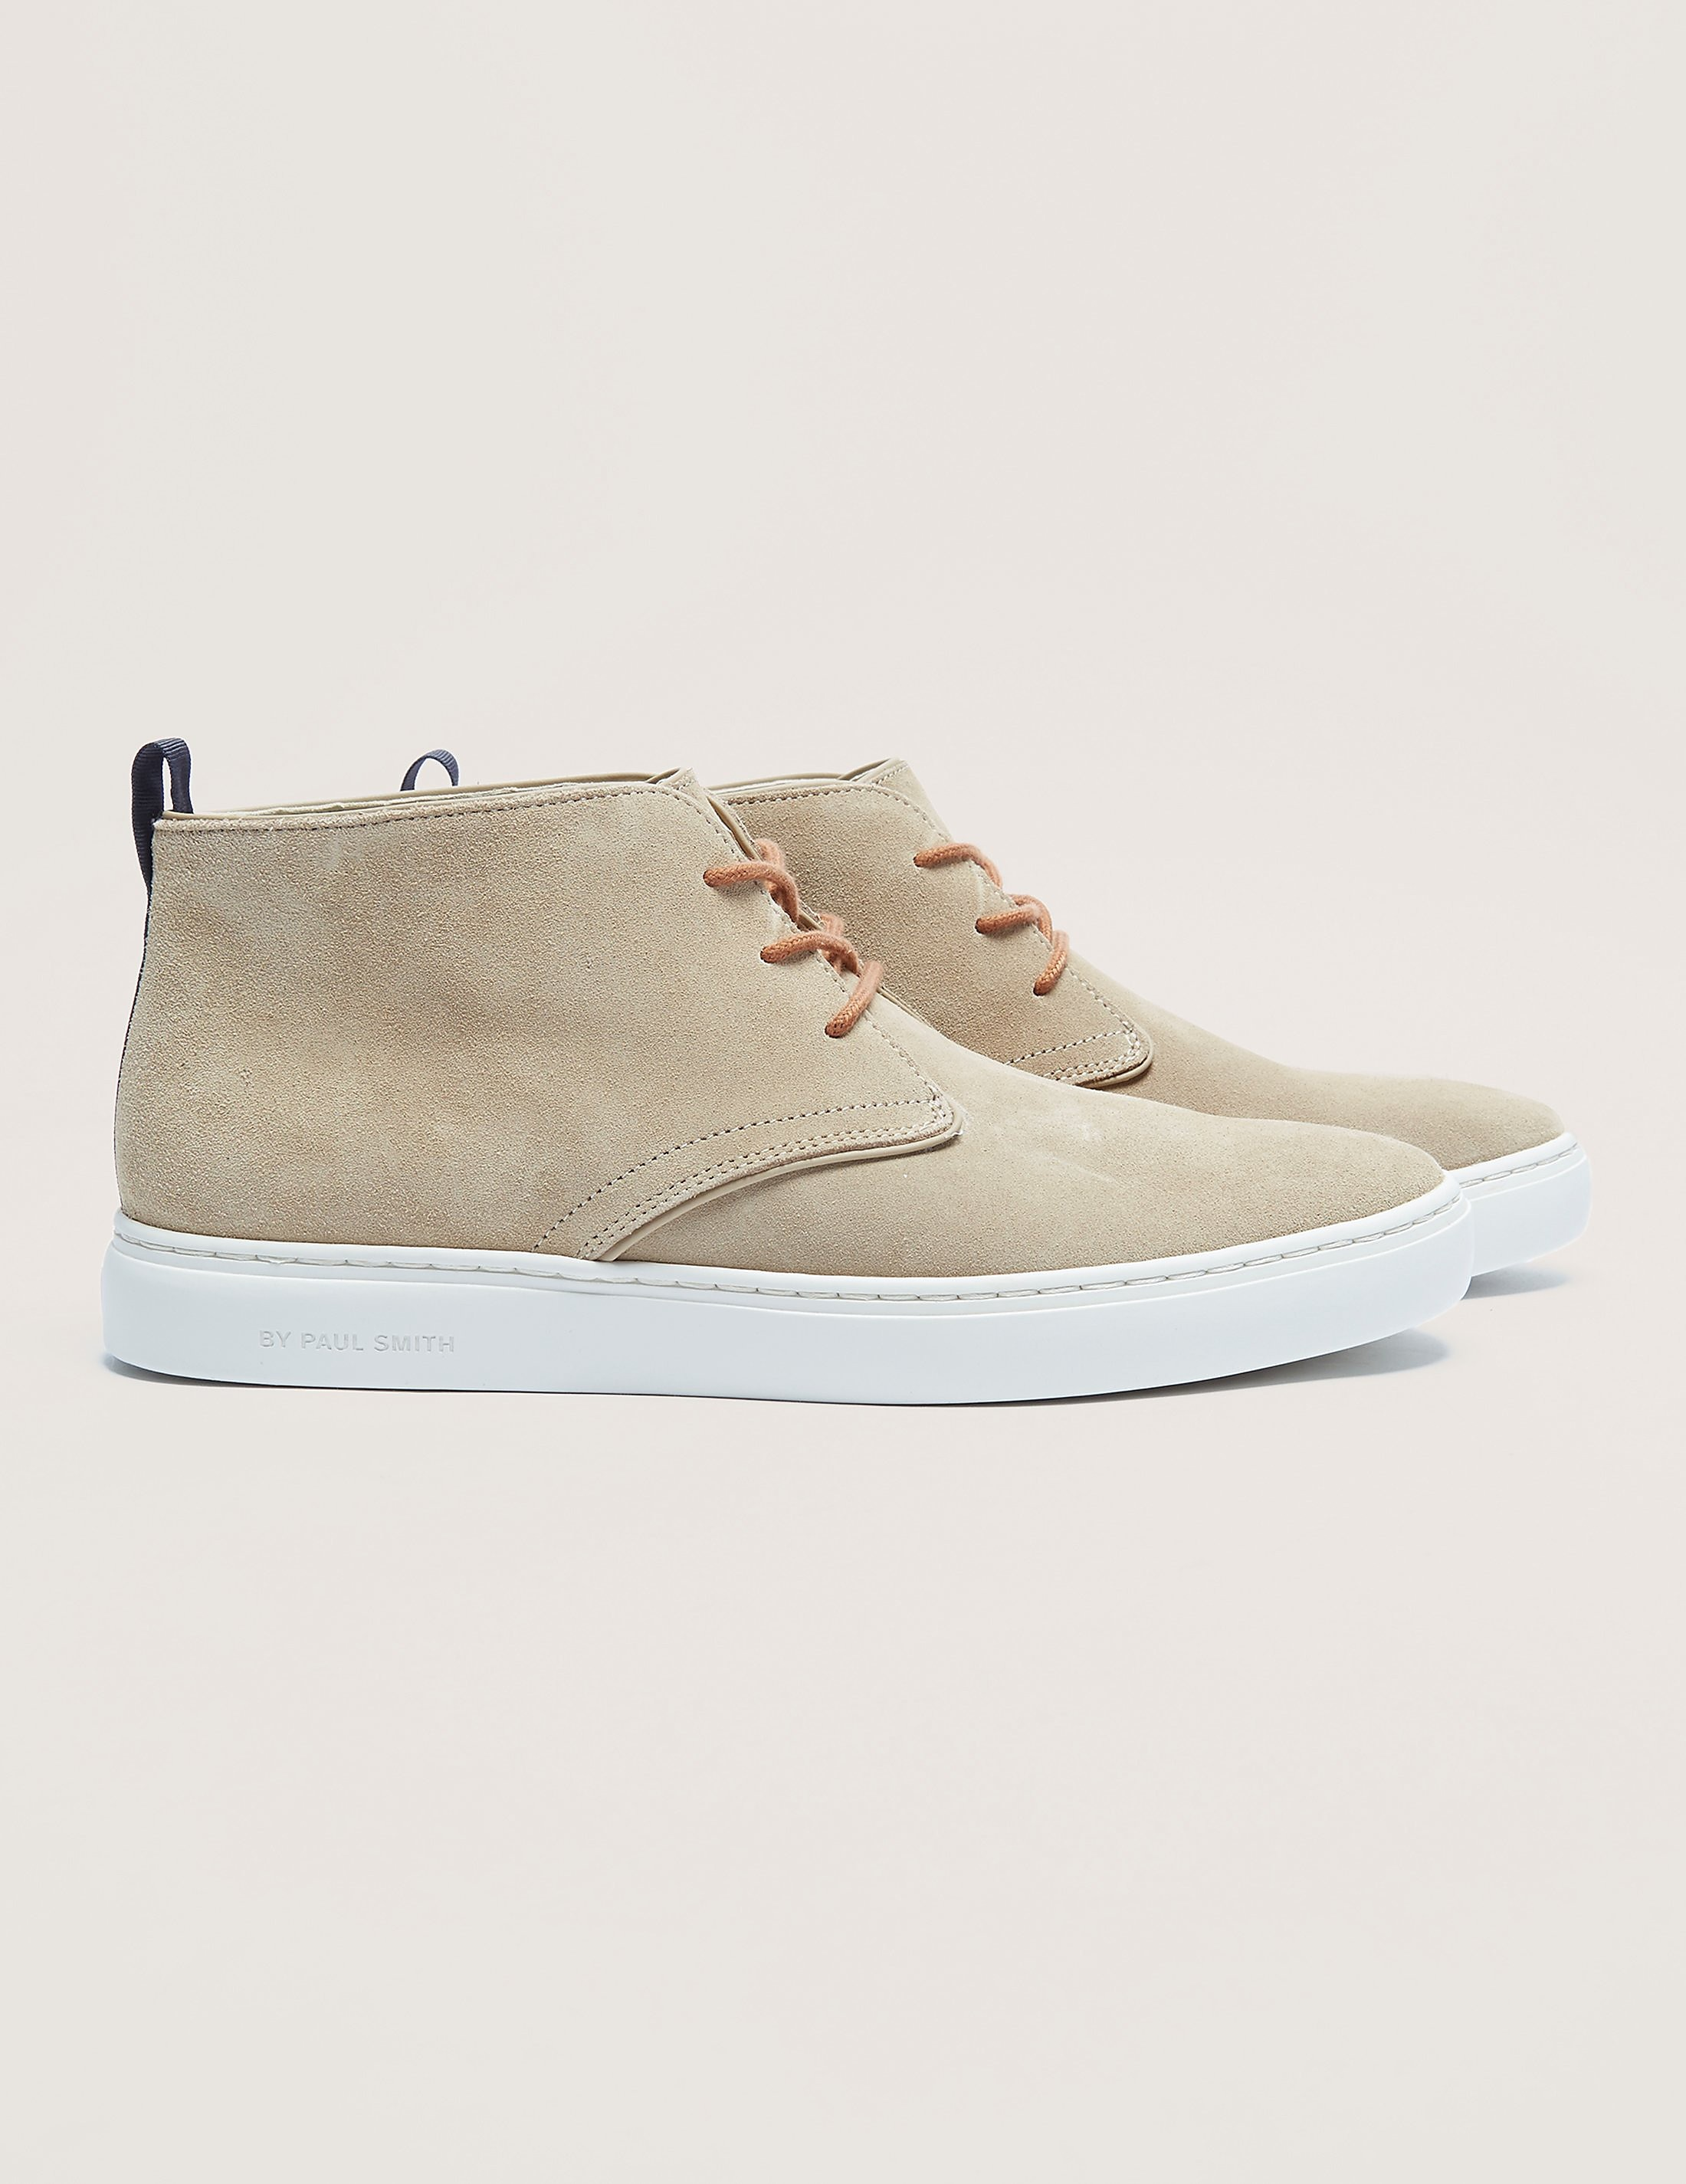 Paul Smith Fong Chukka Boots